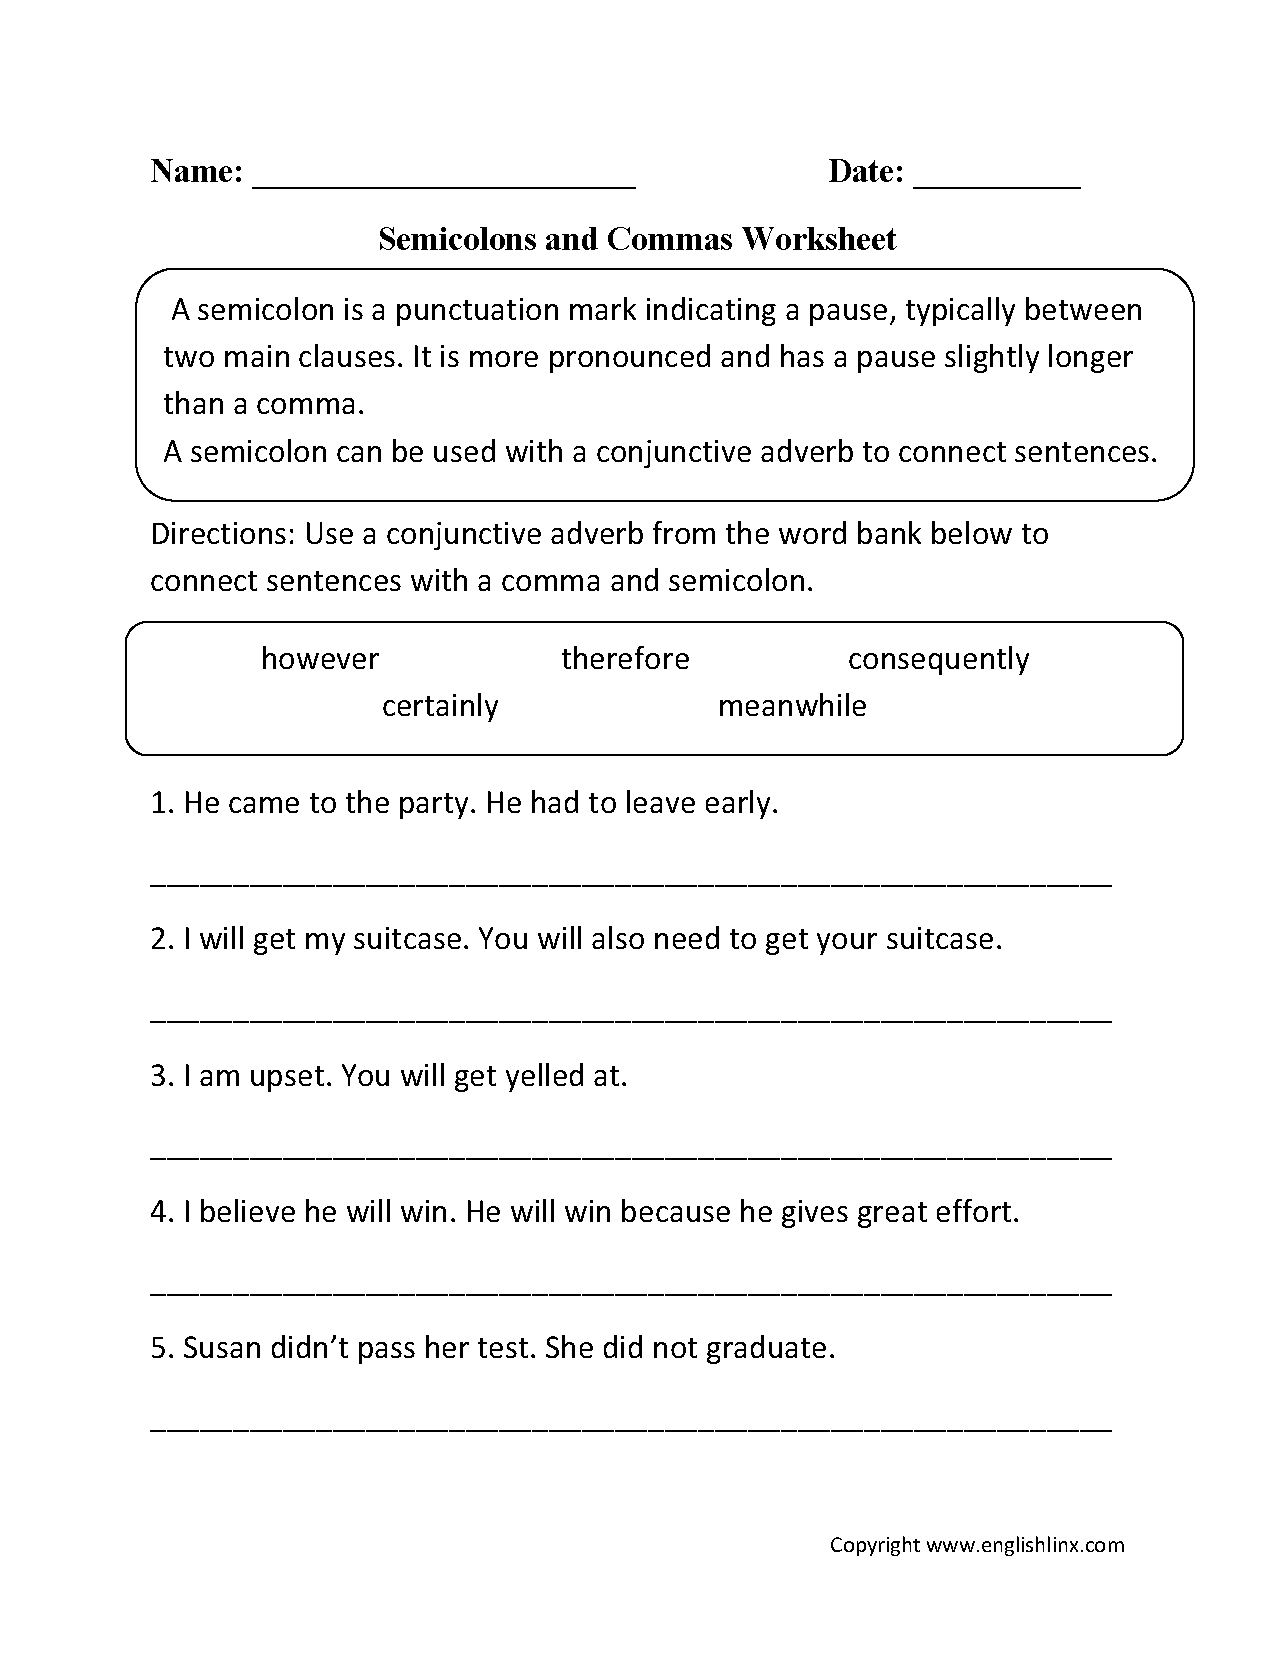 Semicolon and Commas Worksheet   Punctuation worksheets [ 1662 x 1275 Pixel ]